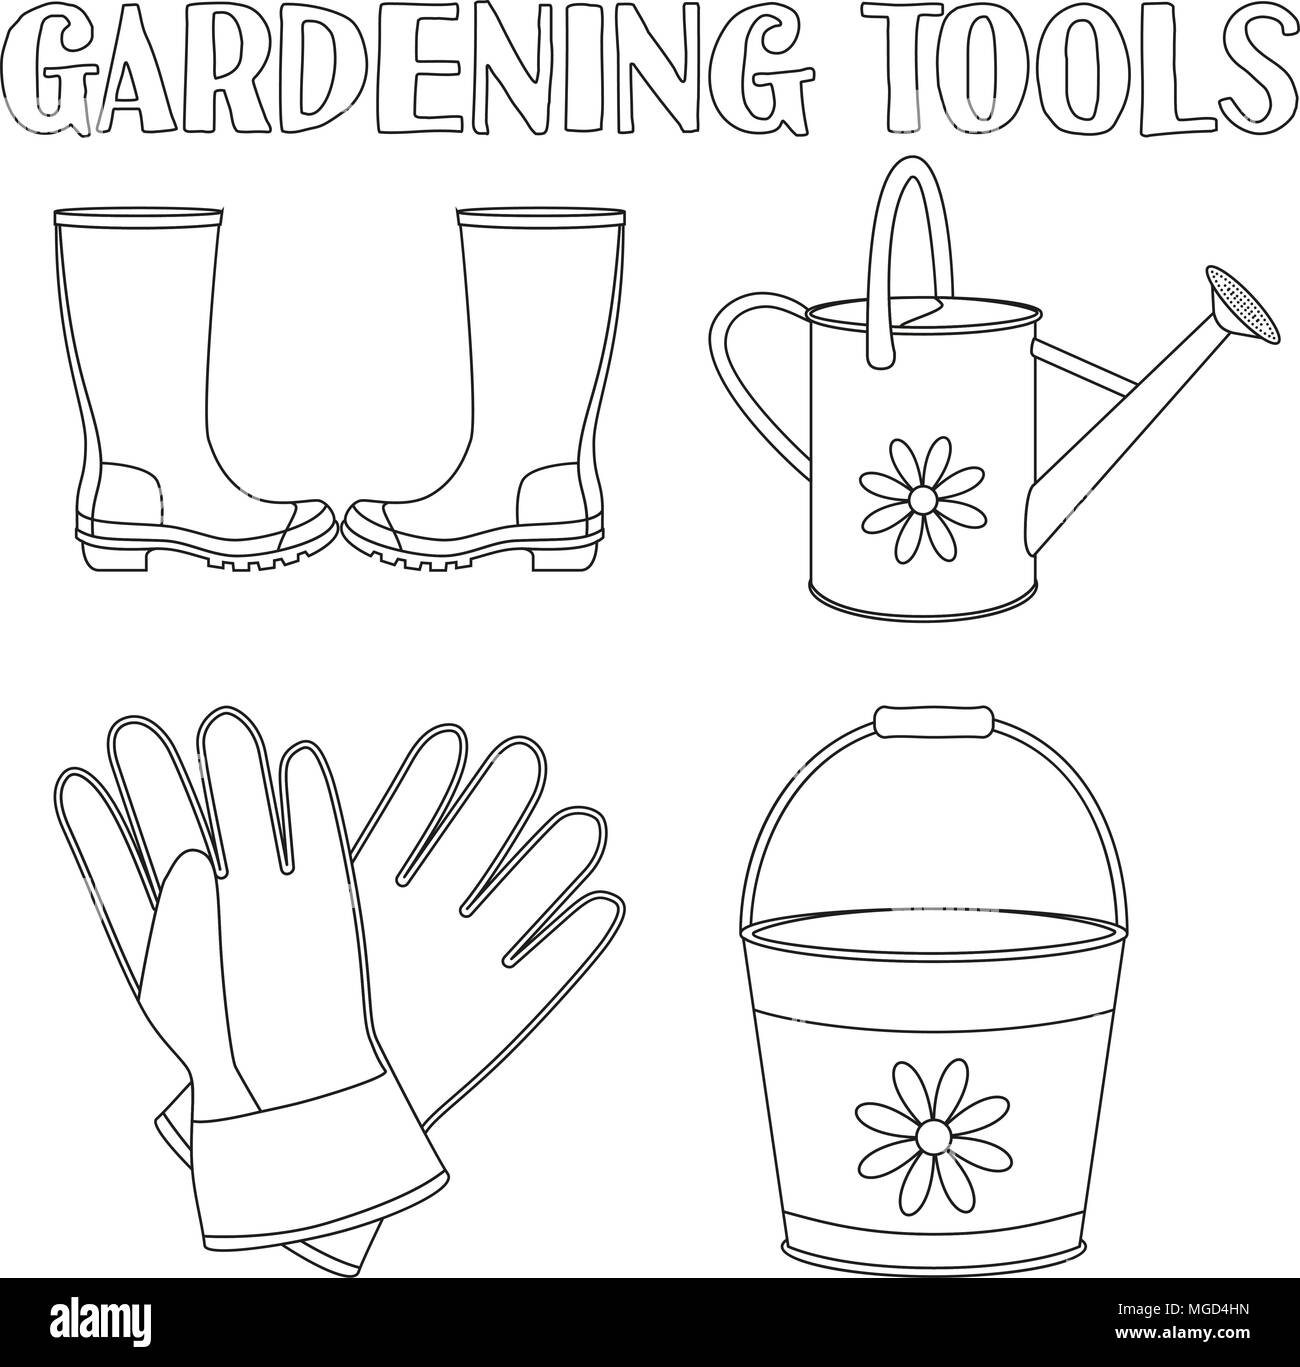 Black And White Garden Watering 4 Elements Set Coloring Book Page For Adults Kids Gardening Tool Vector Illustration Gift Card Certificate S